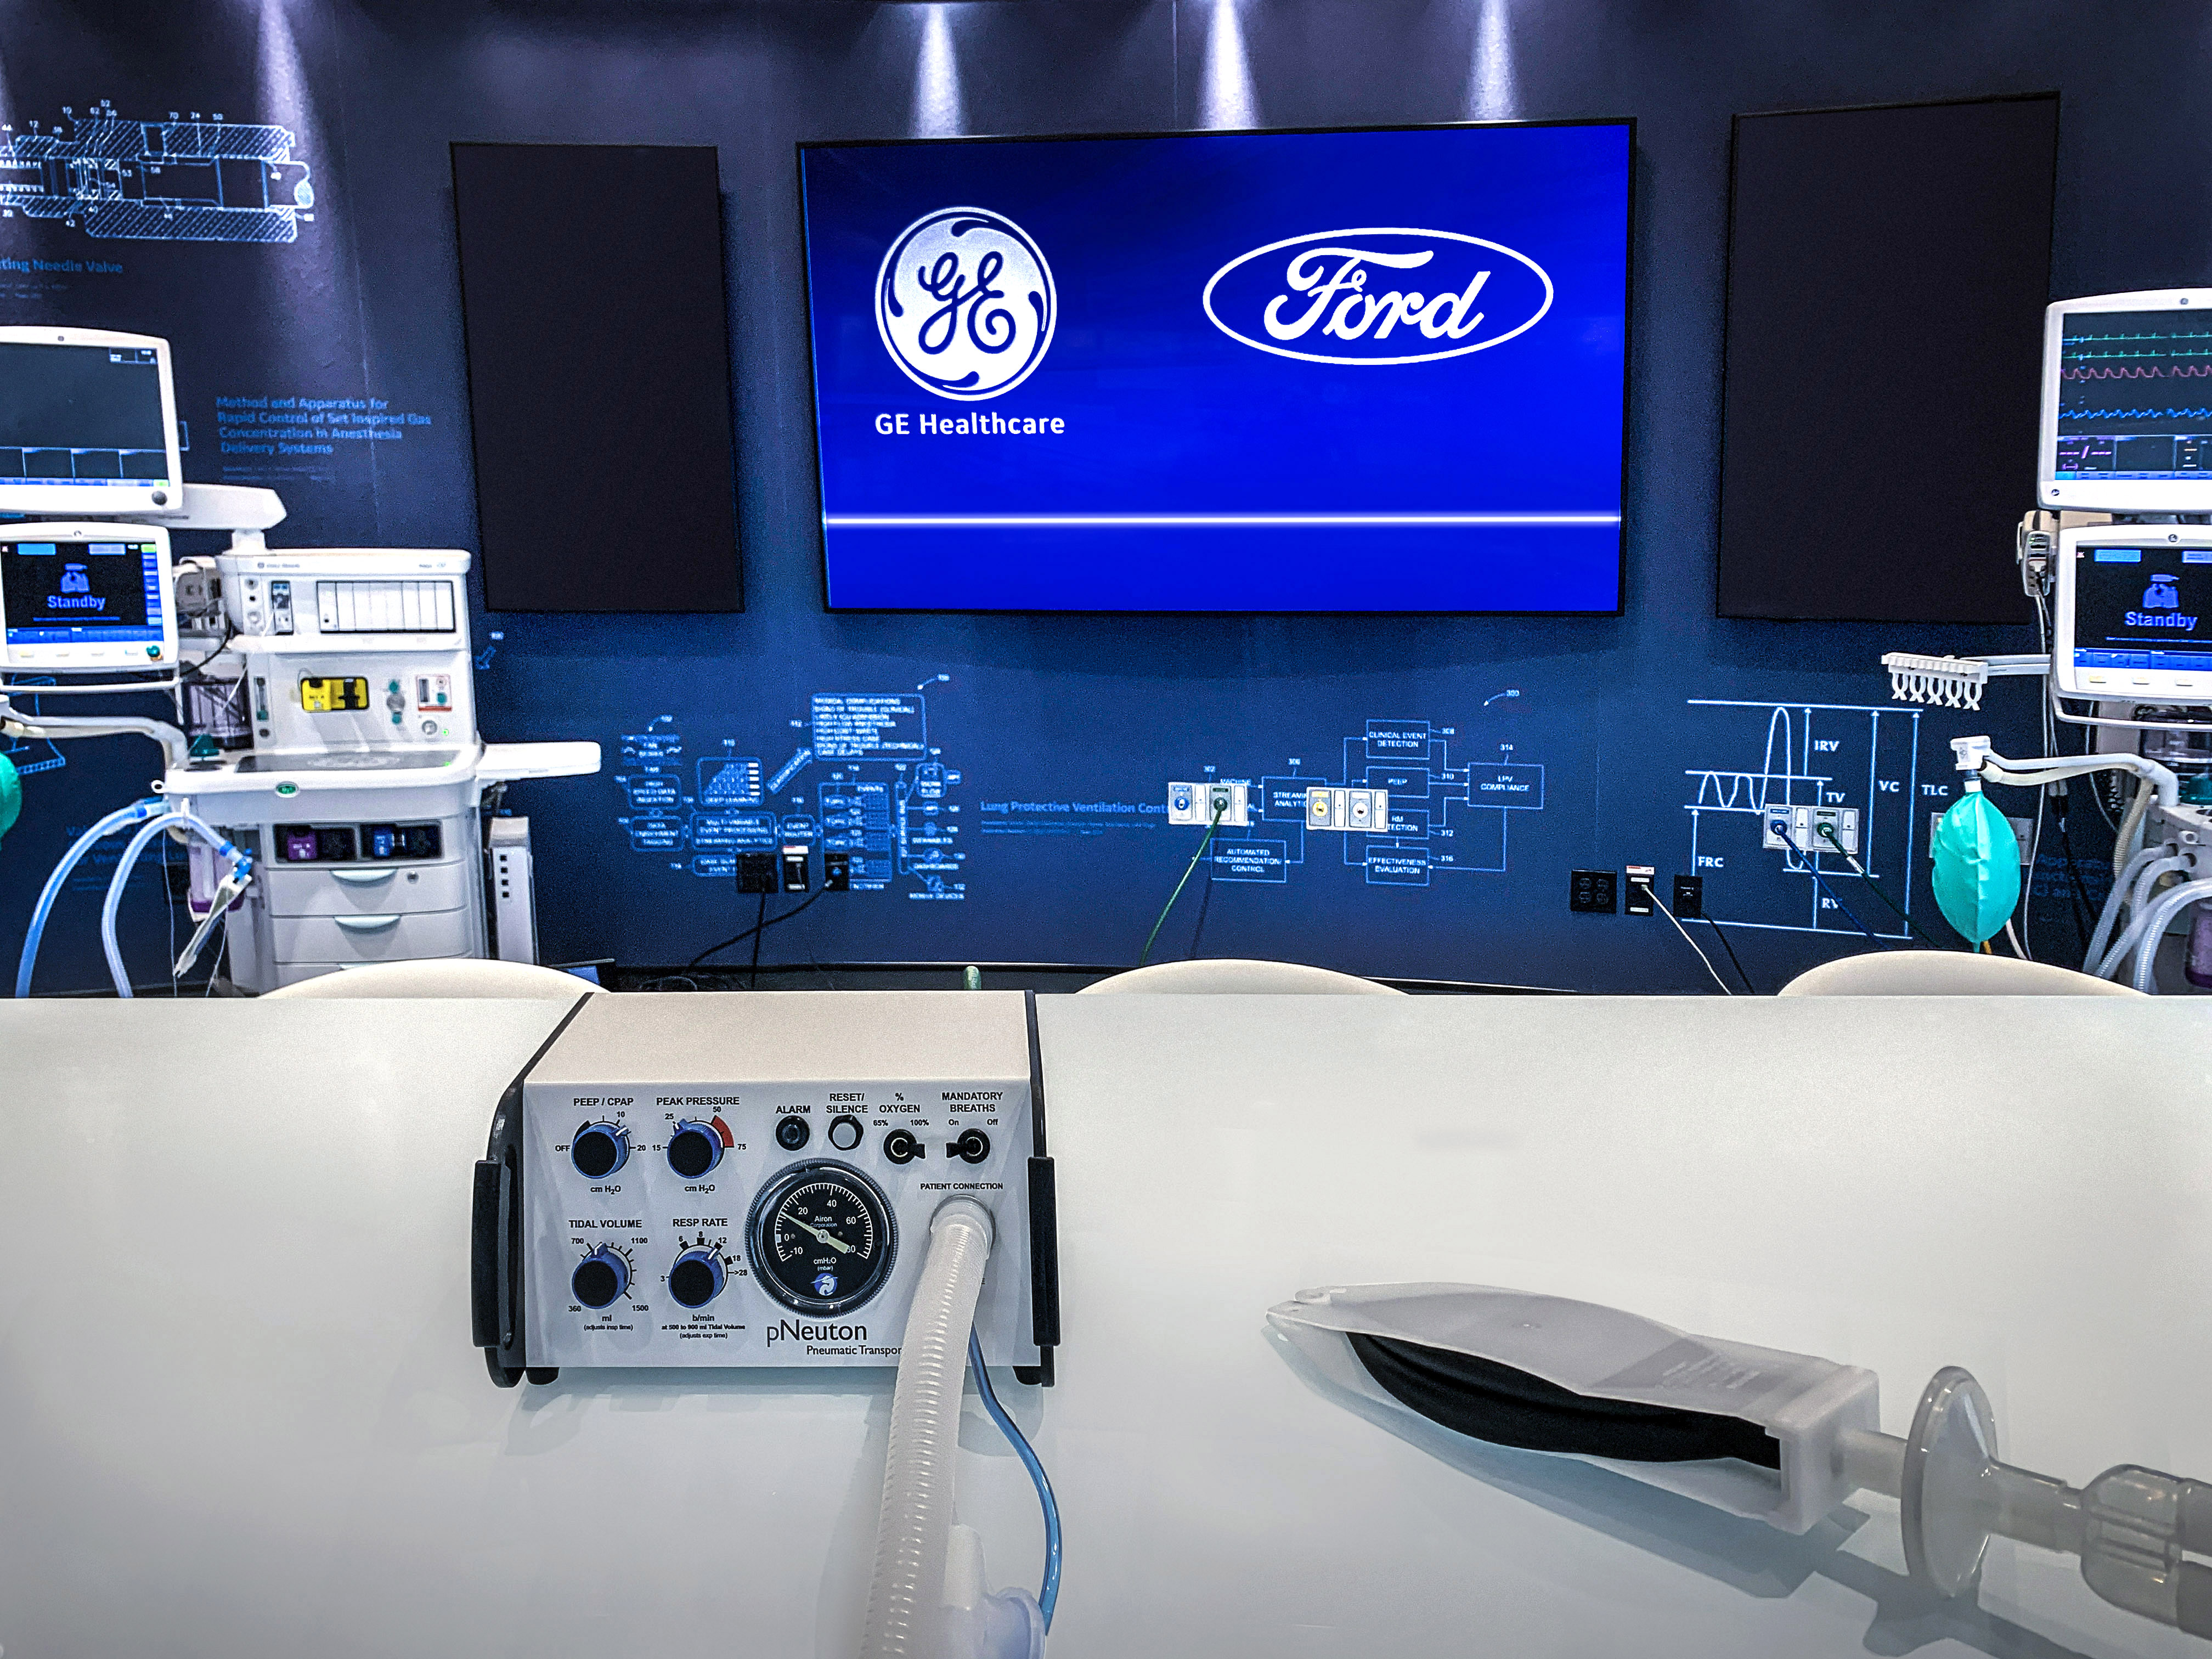 Image courtesy of Ford